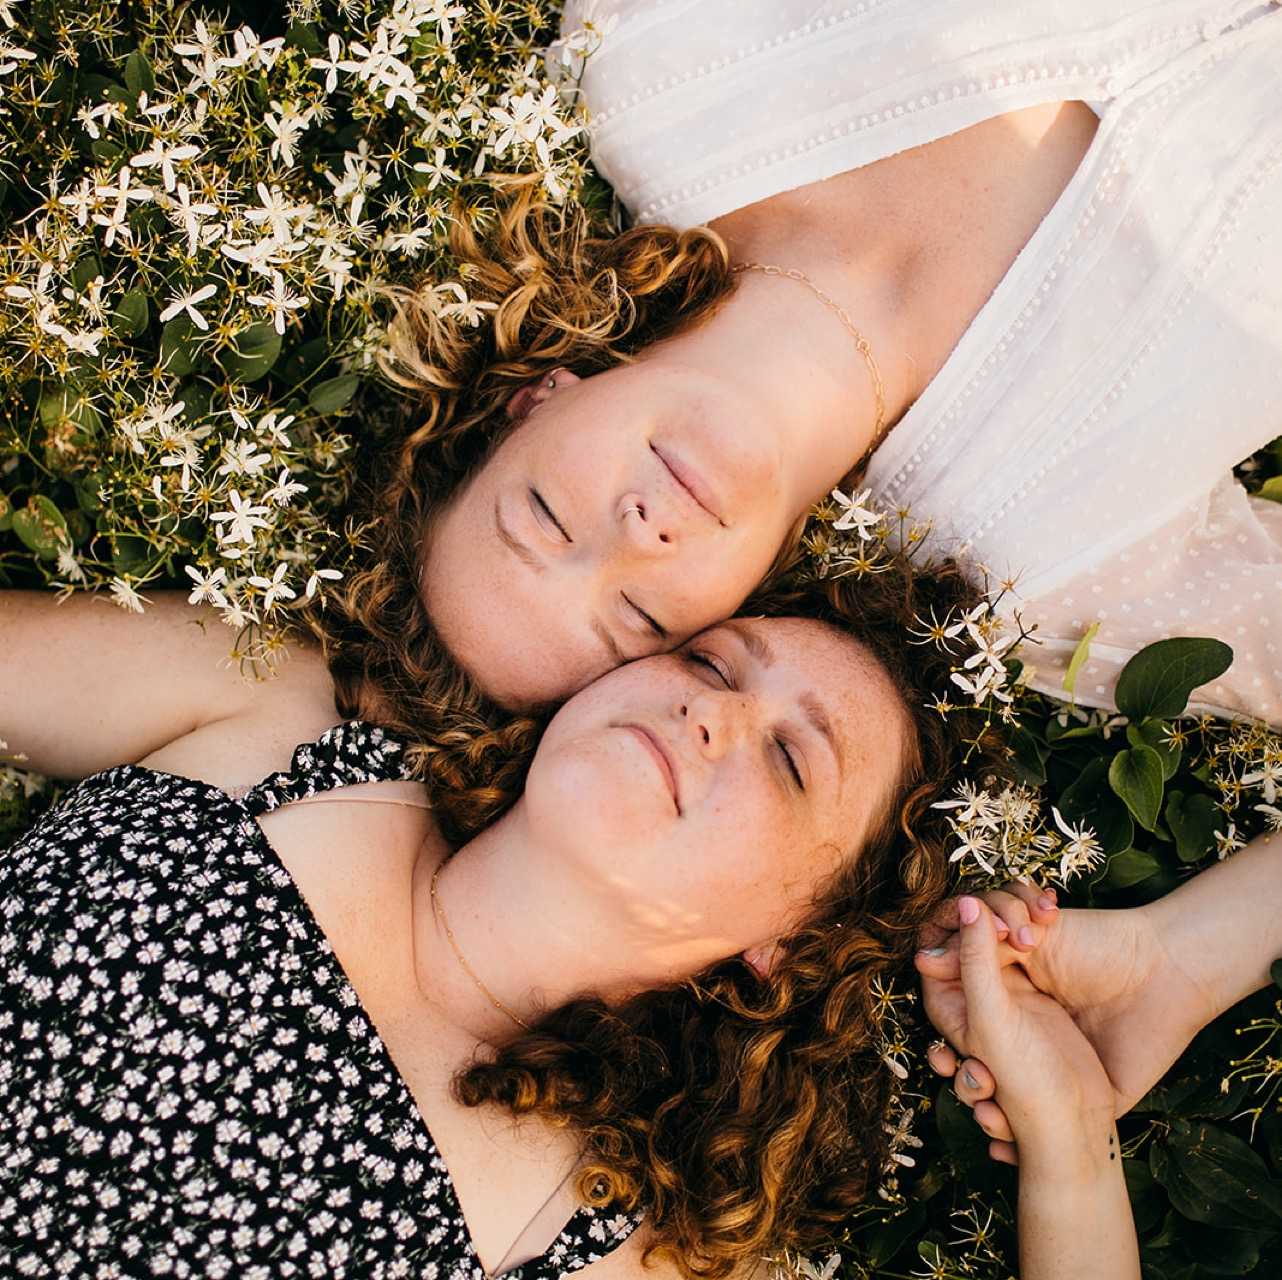 A lesbian couple lays in a field of white wildflowers with their heads against one another's. They're holding hands with their eyes closed.